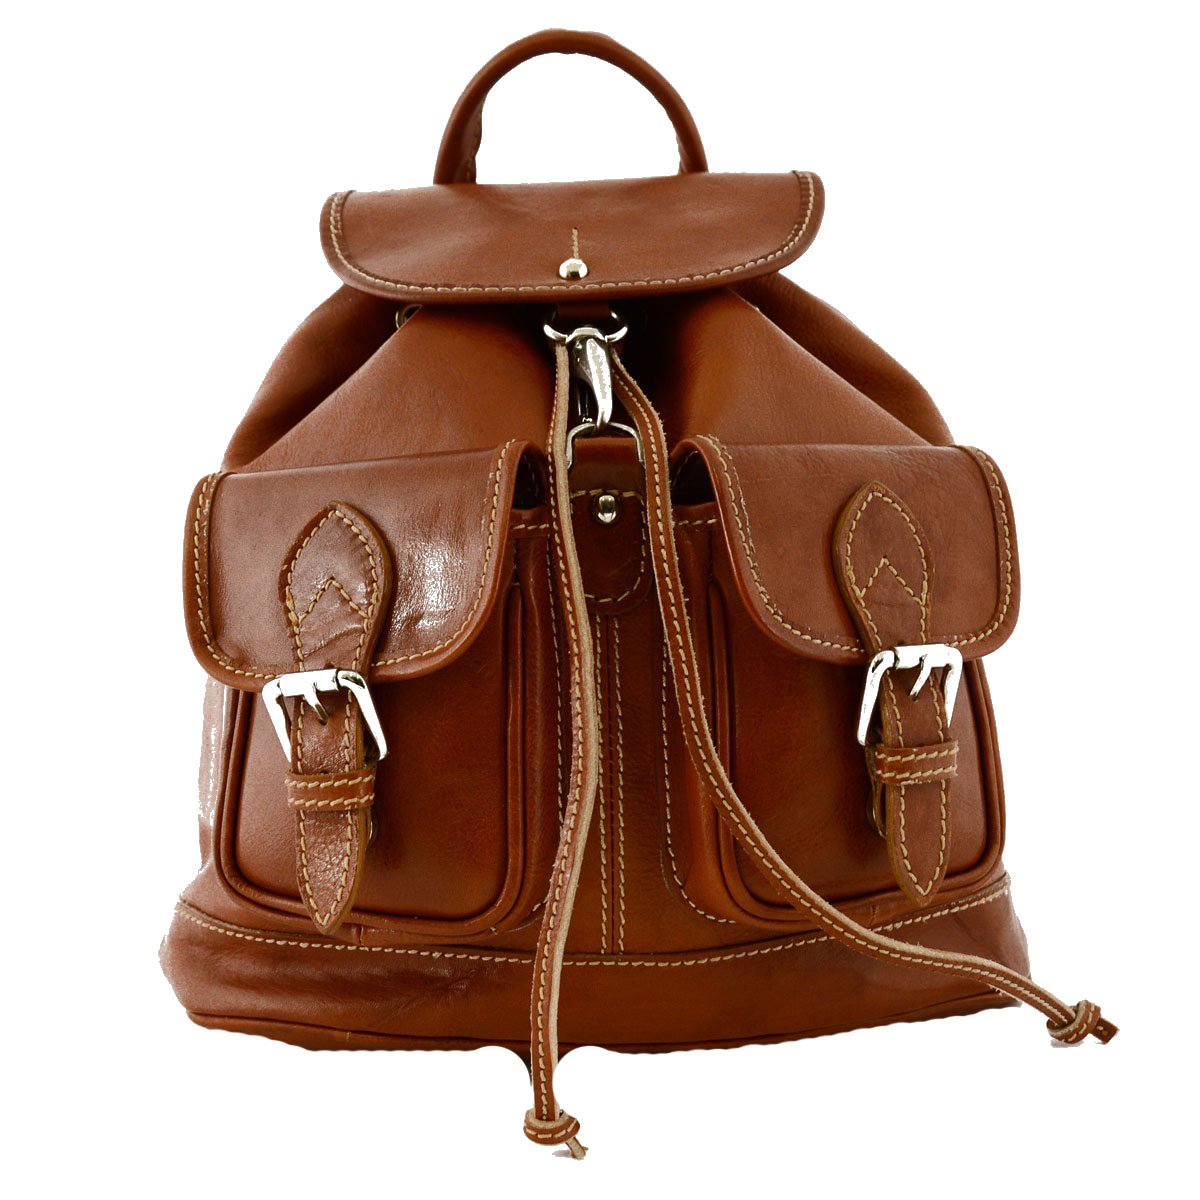 Made In Italy Leather Woman Backpack Color Cognac - Backpack   B01AU9K24Y